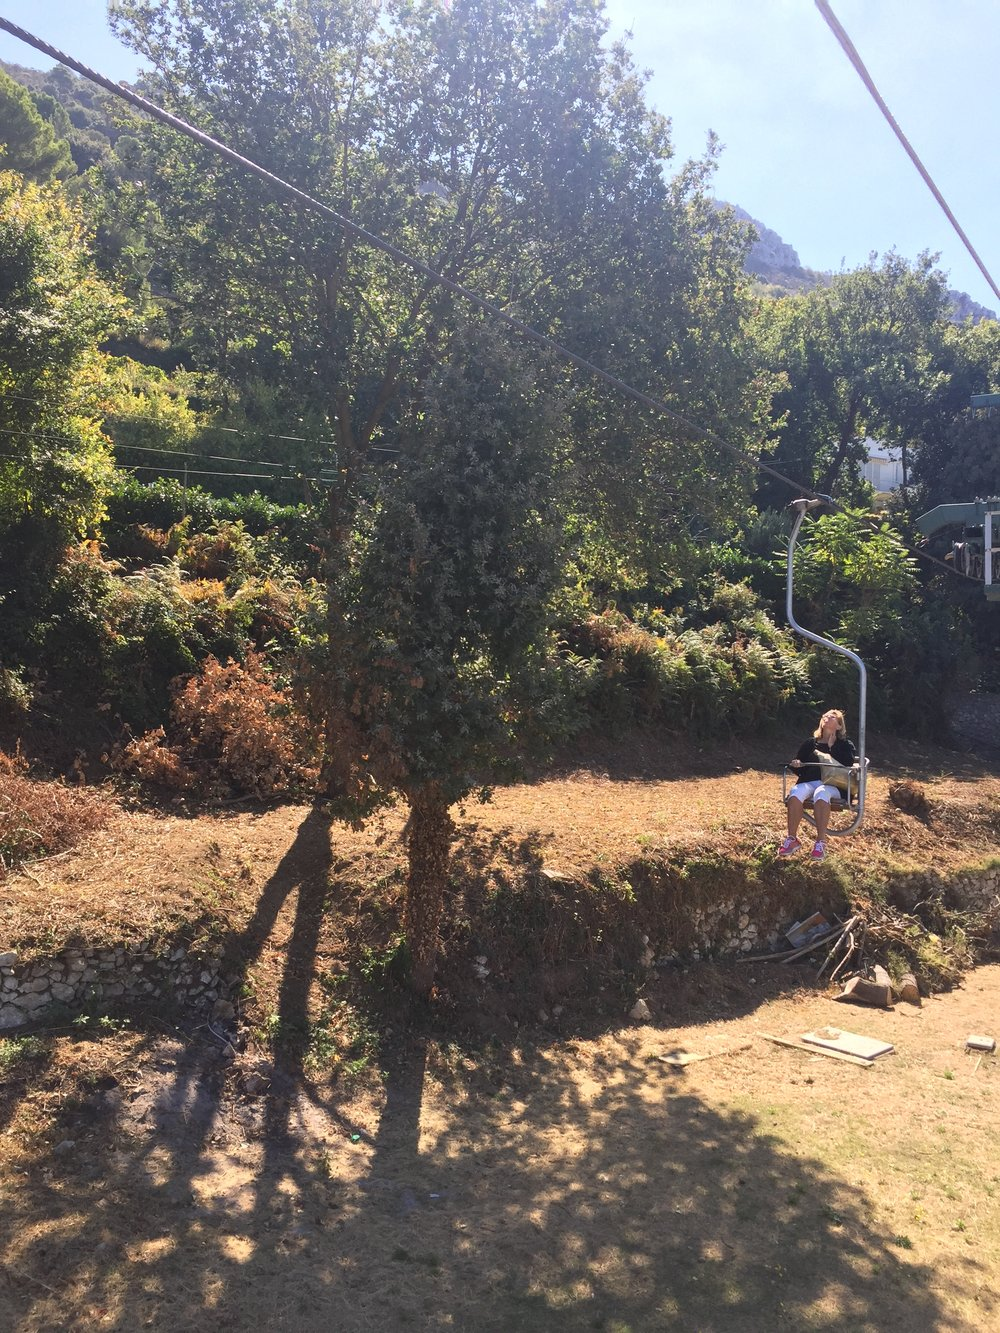 The chairlift on Anacapri